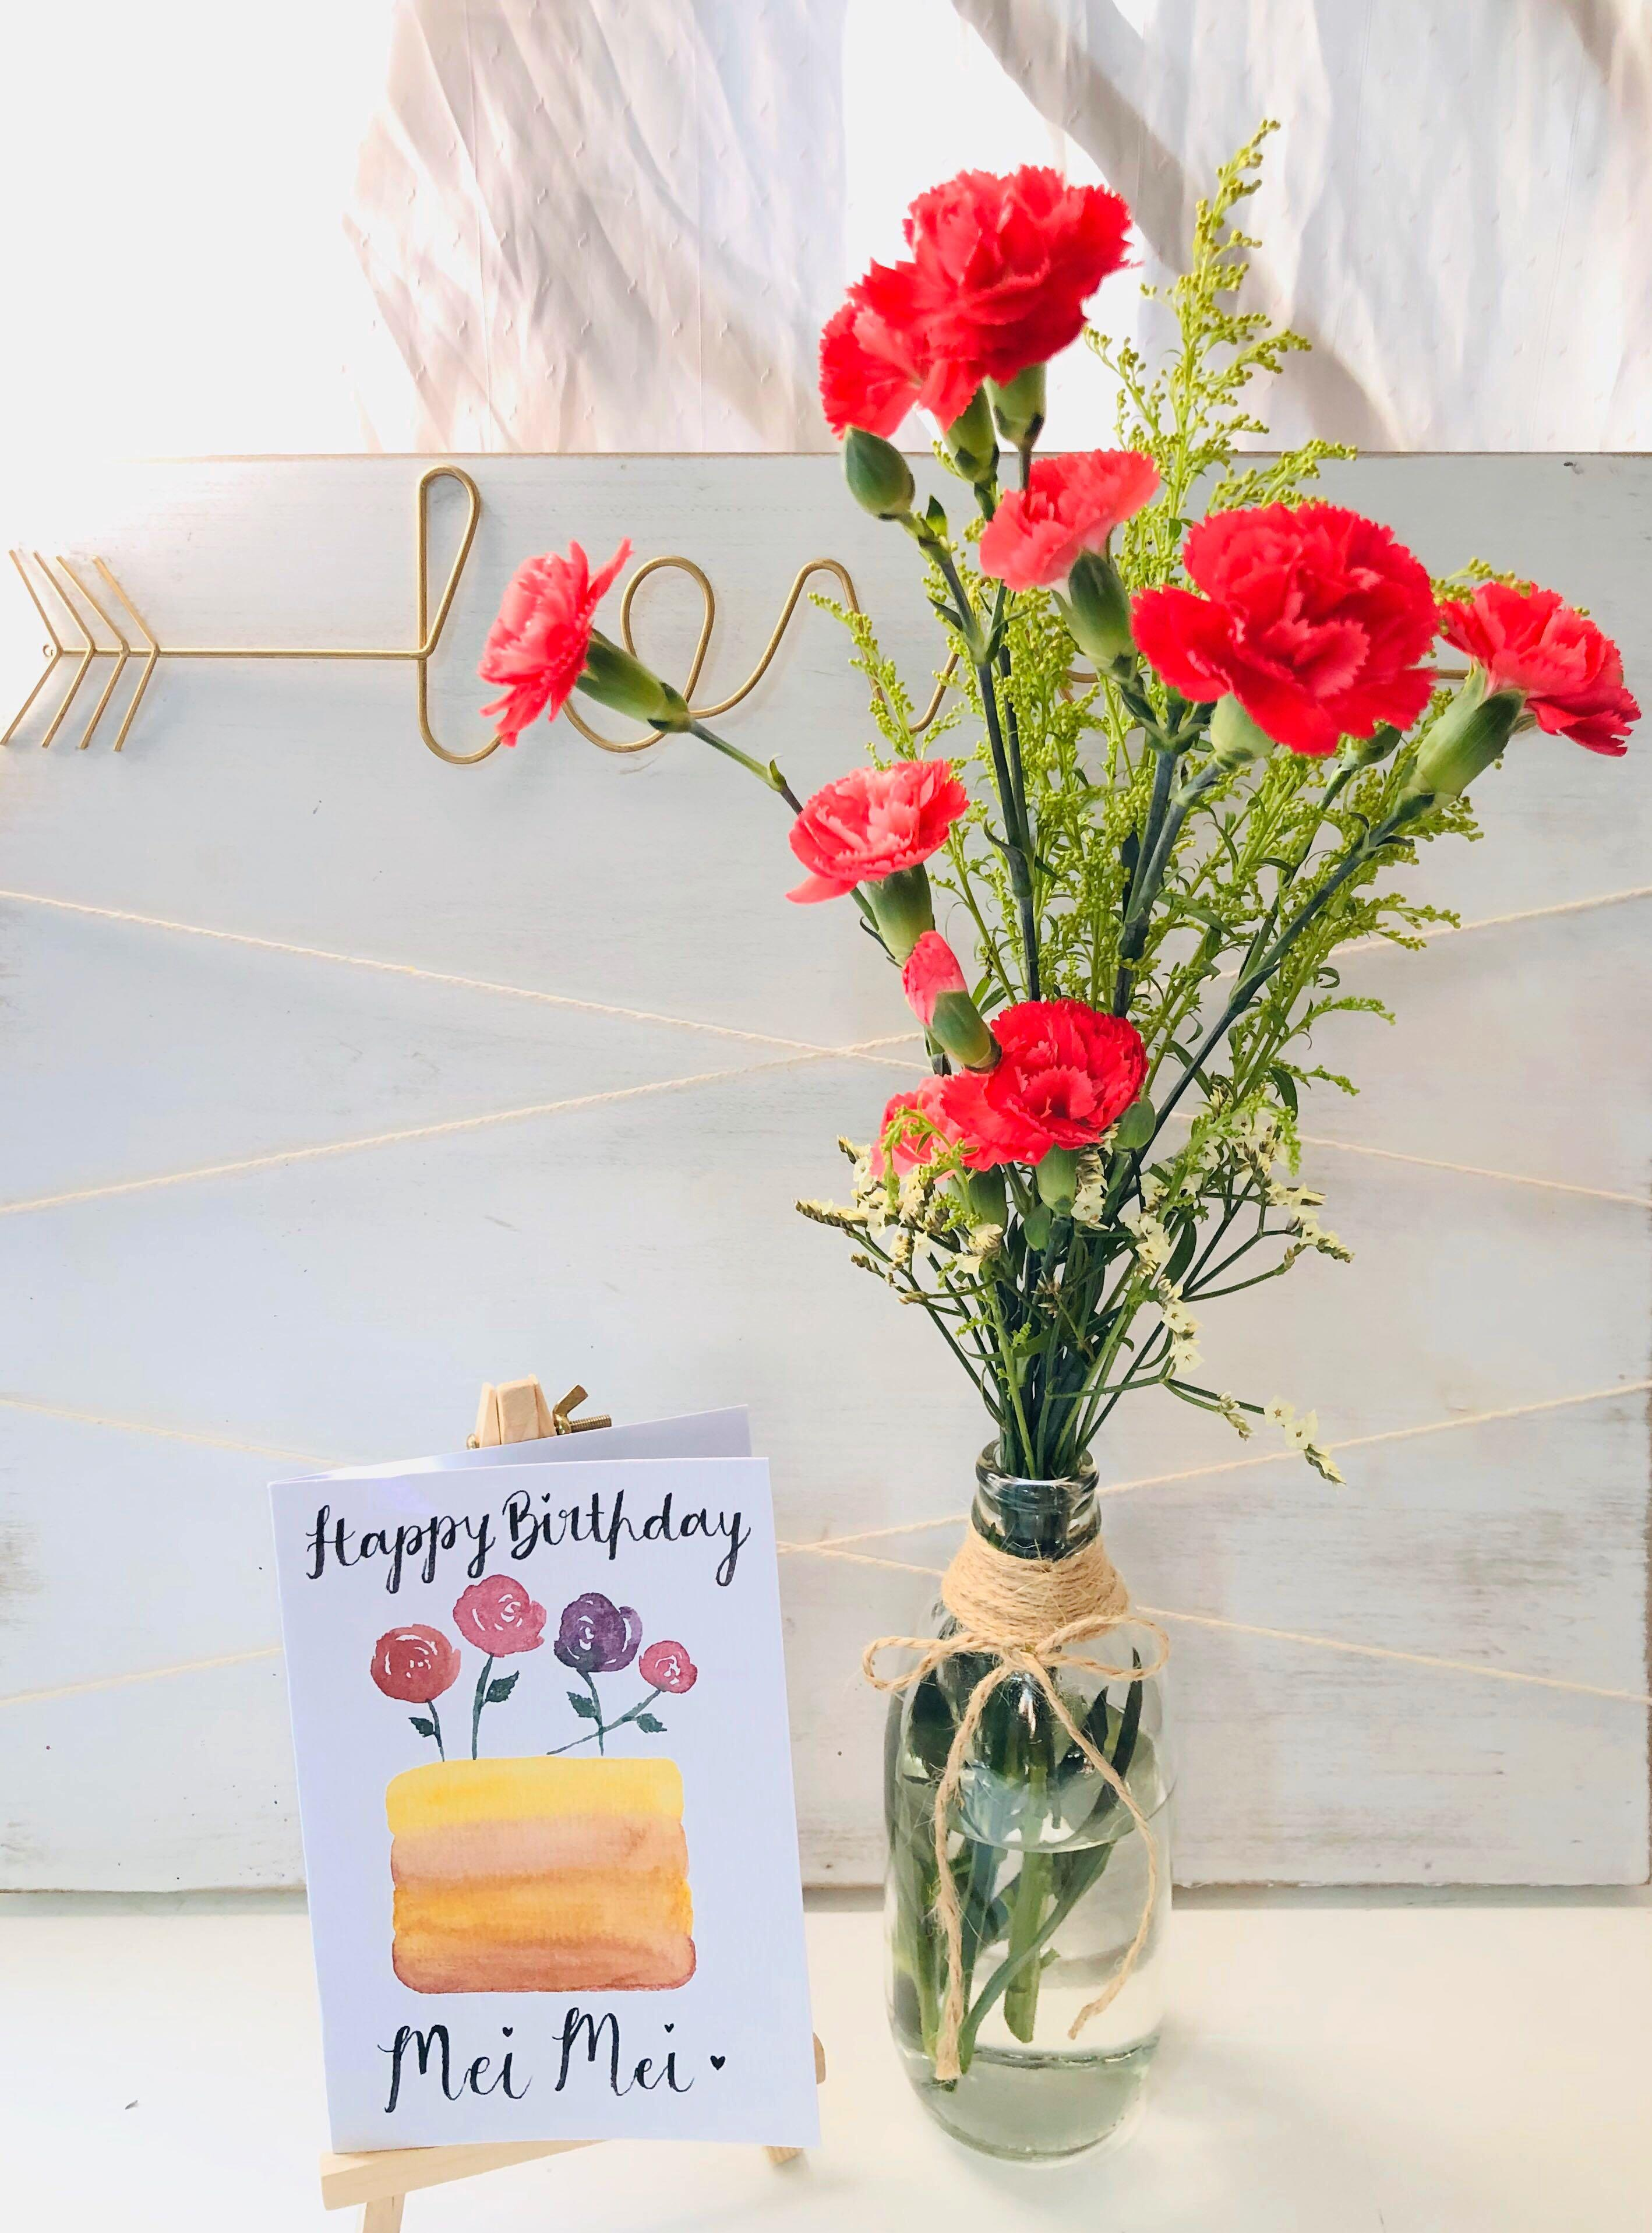 Free Delivery Flowers And Handmade Card Bundle Ft Carnations Occasion Love Anniversary Birthday Surprise Get Well Soon Thank You Well Wishes Congratulations Madeinsg Gardening Flowers Bouquets On Carousell